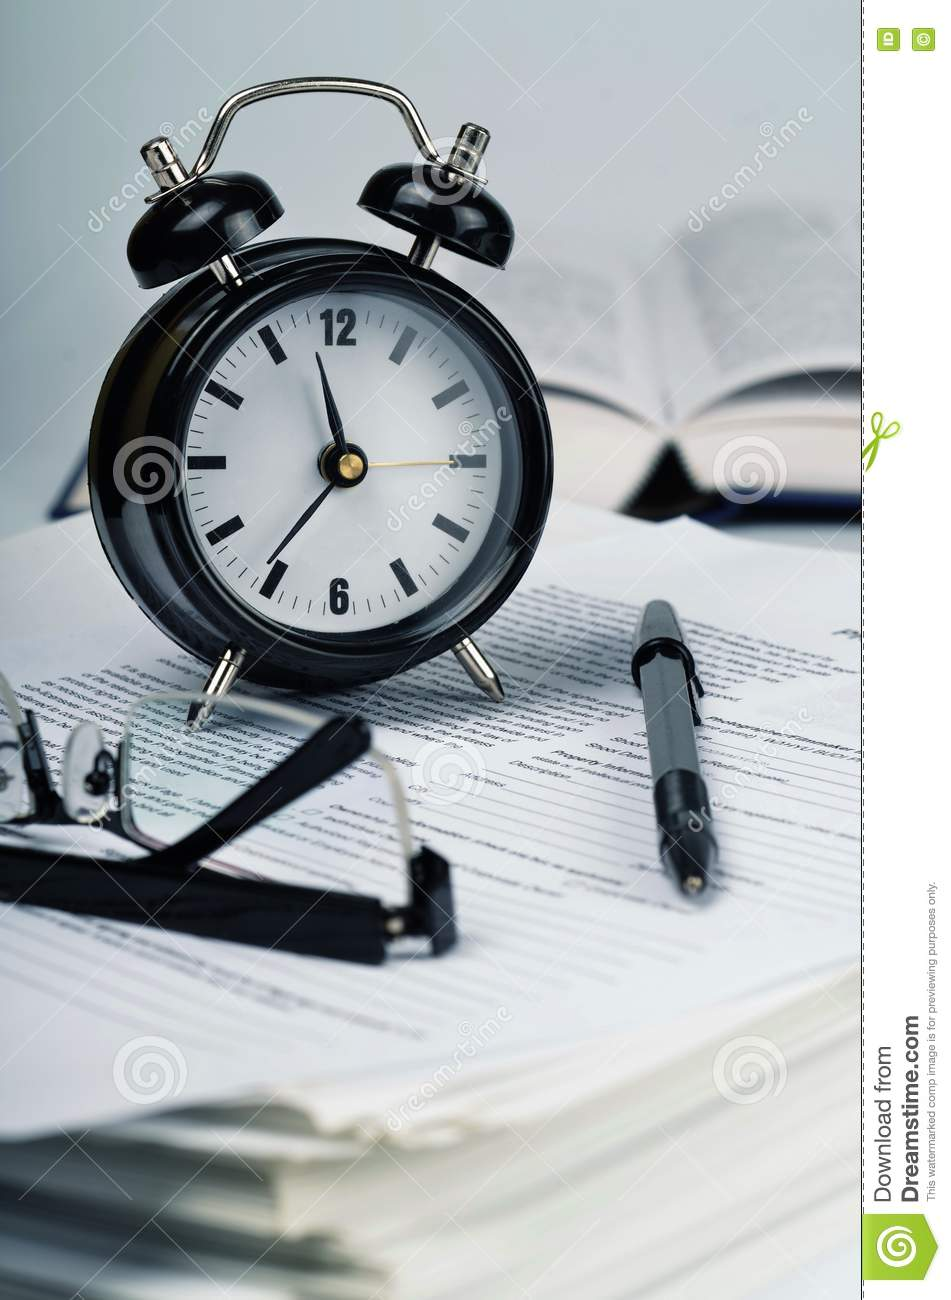 Paperwork & Time Efficiency 02 Stock Images - Image: 22884394